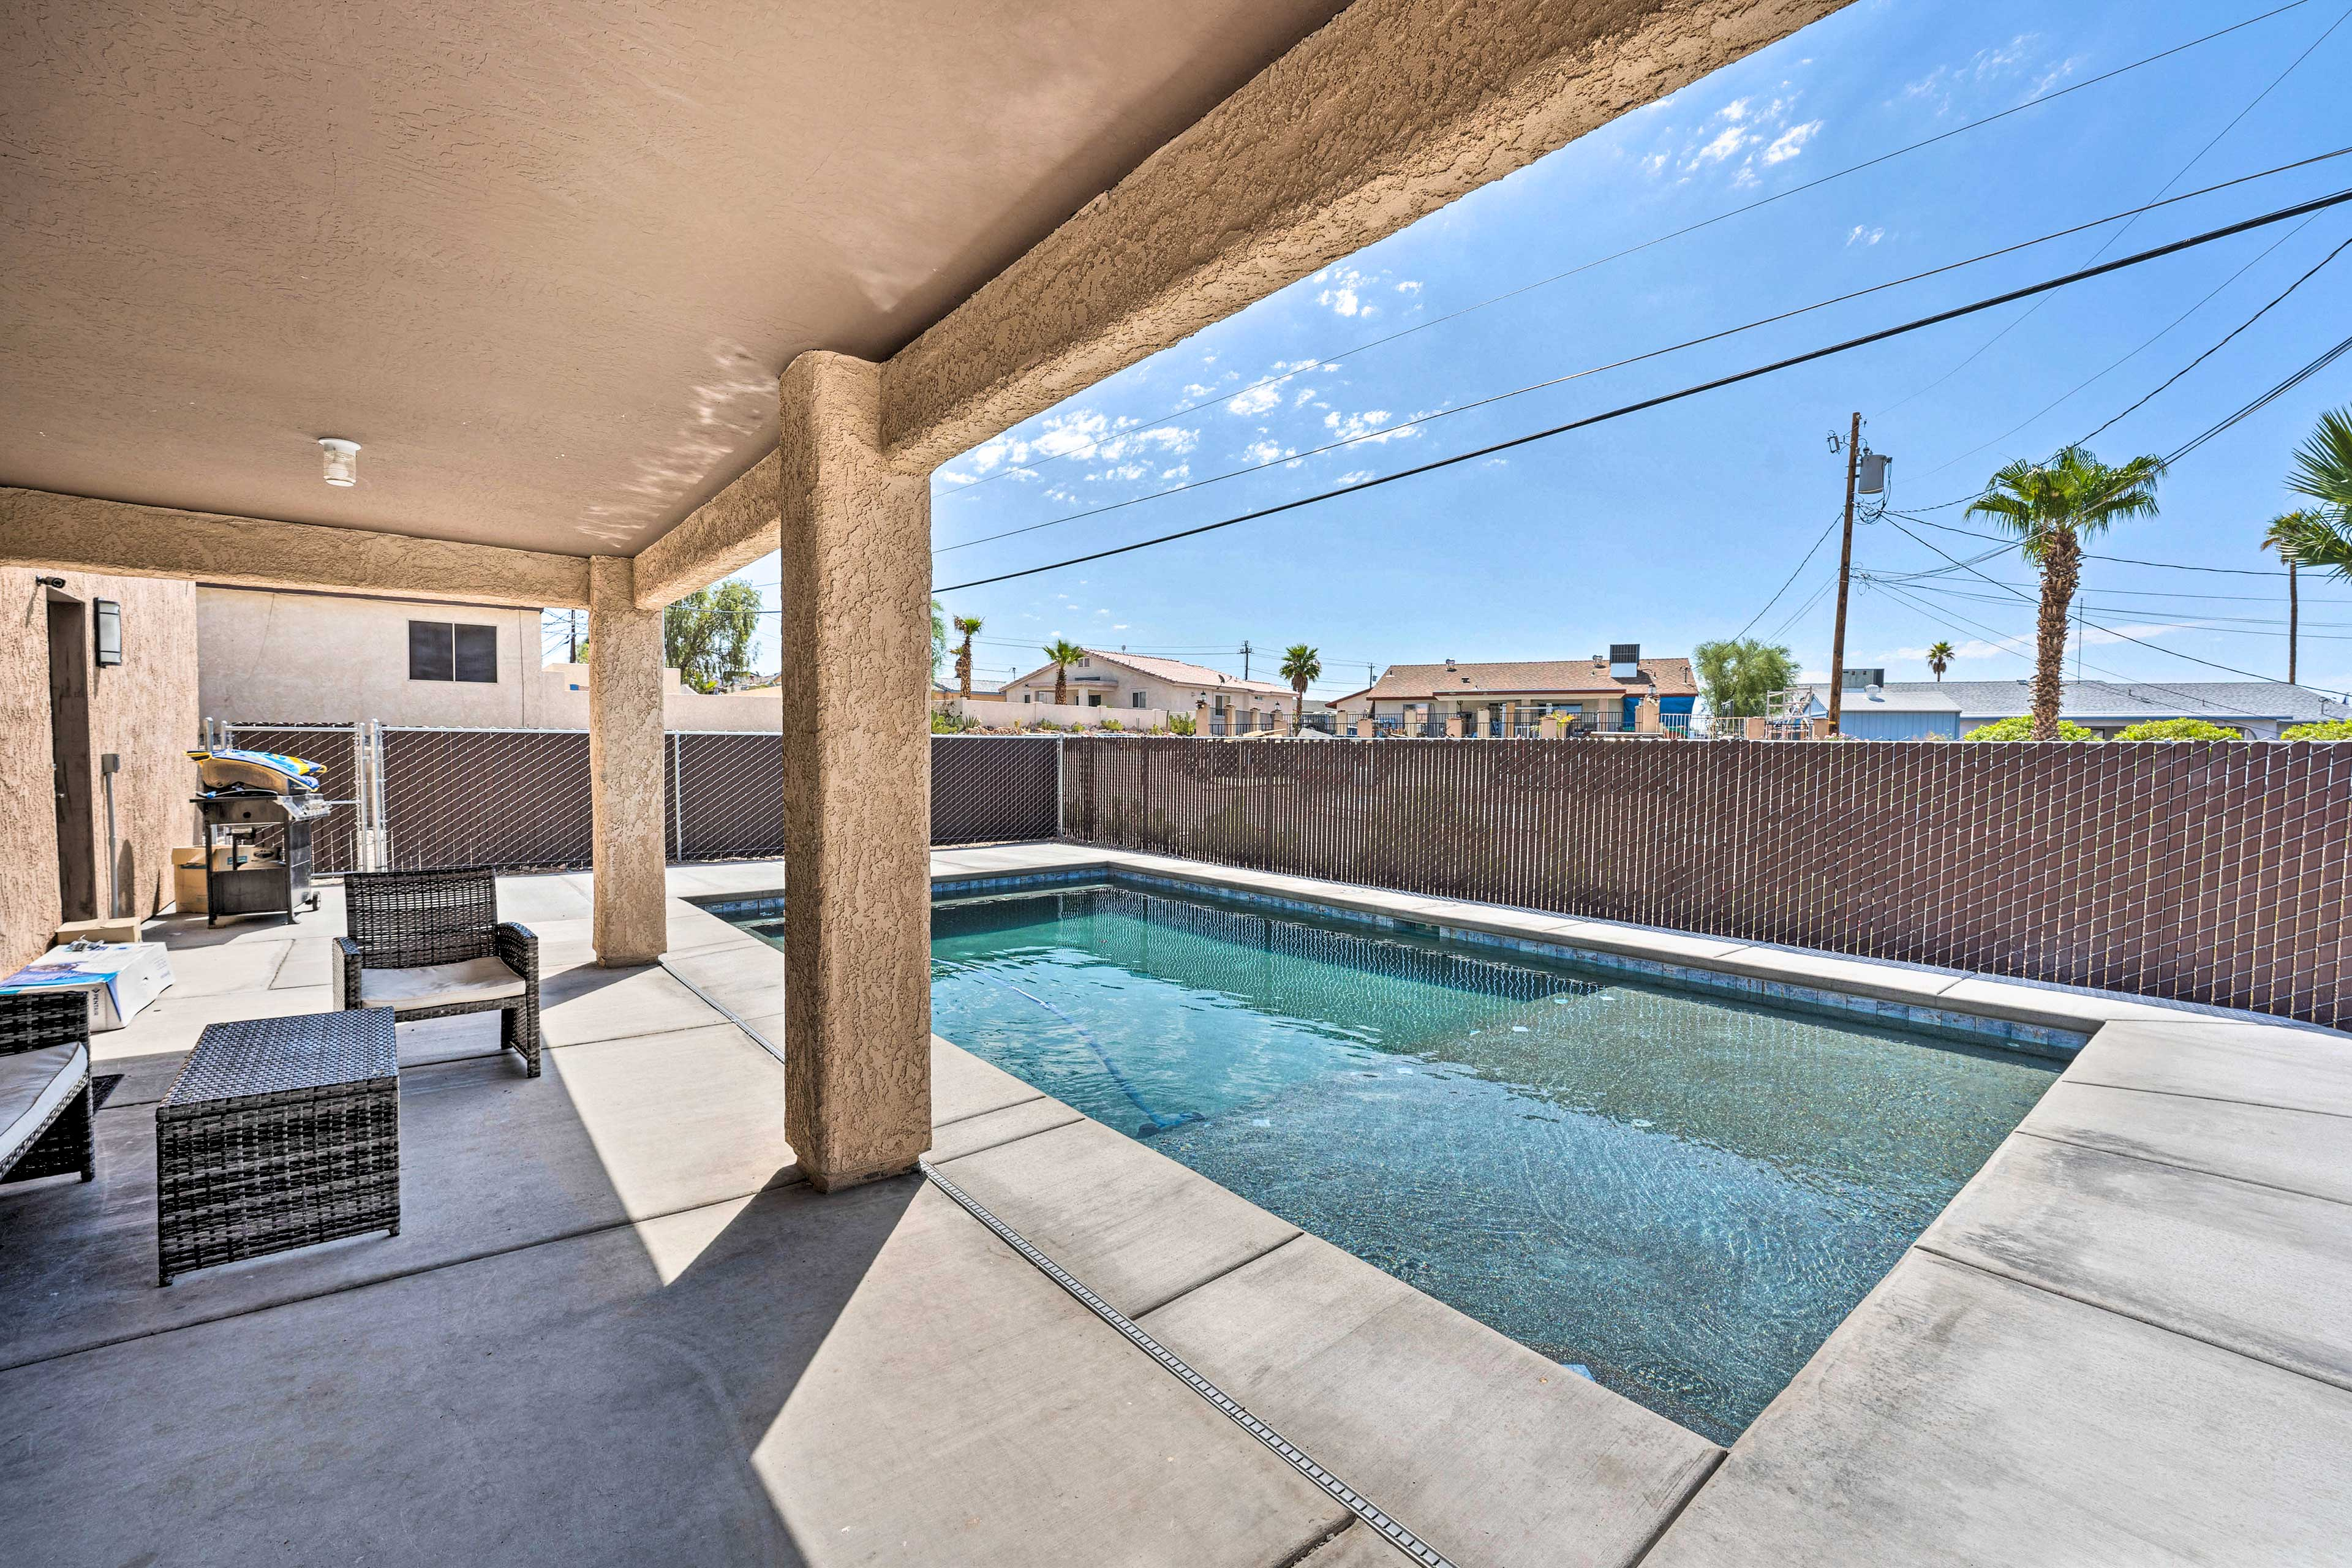 Private Covered Patio   Fenced Backyard   Pool